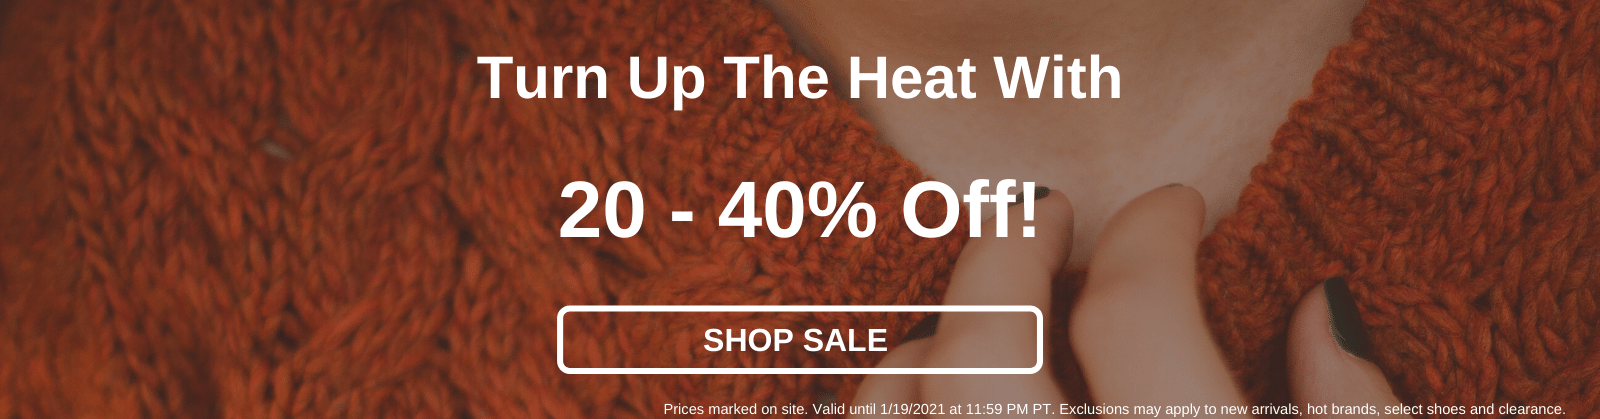 Turn Up The Heat With 20-40% Off! [Shop Sale]